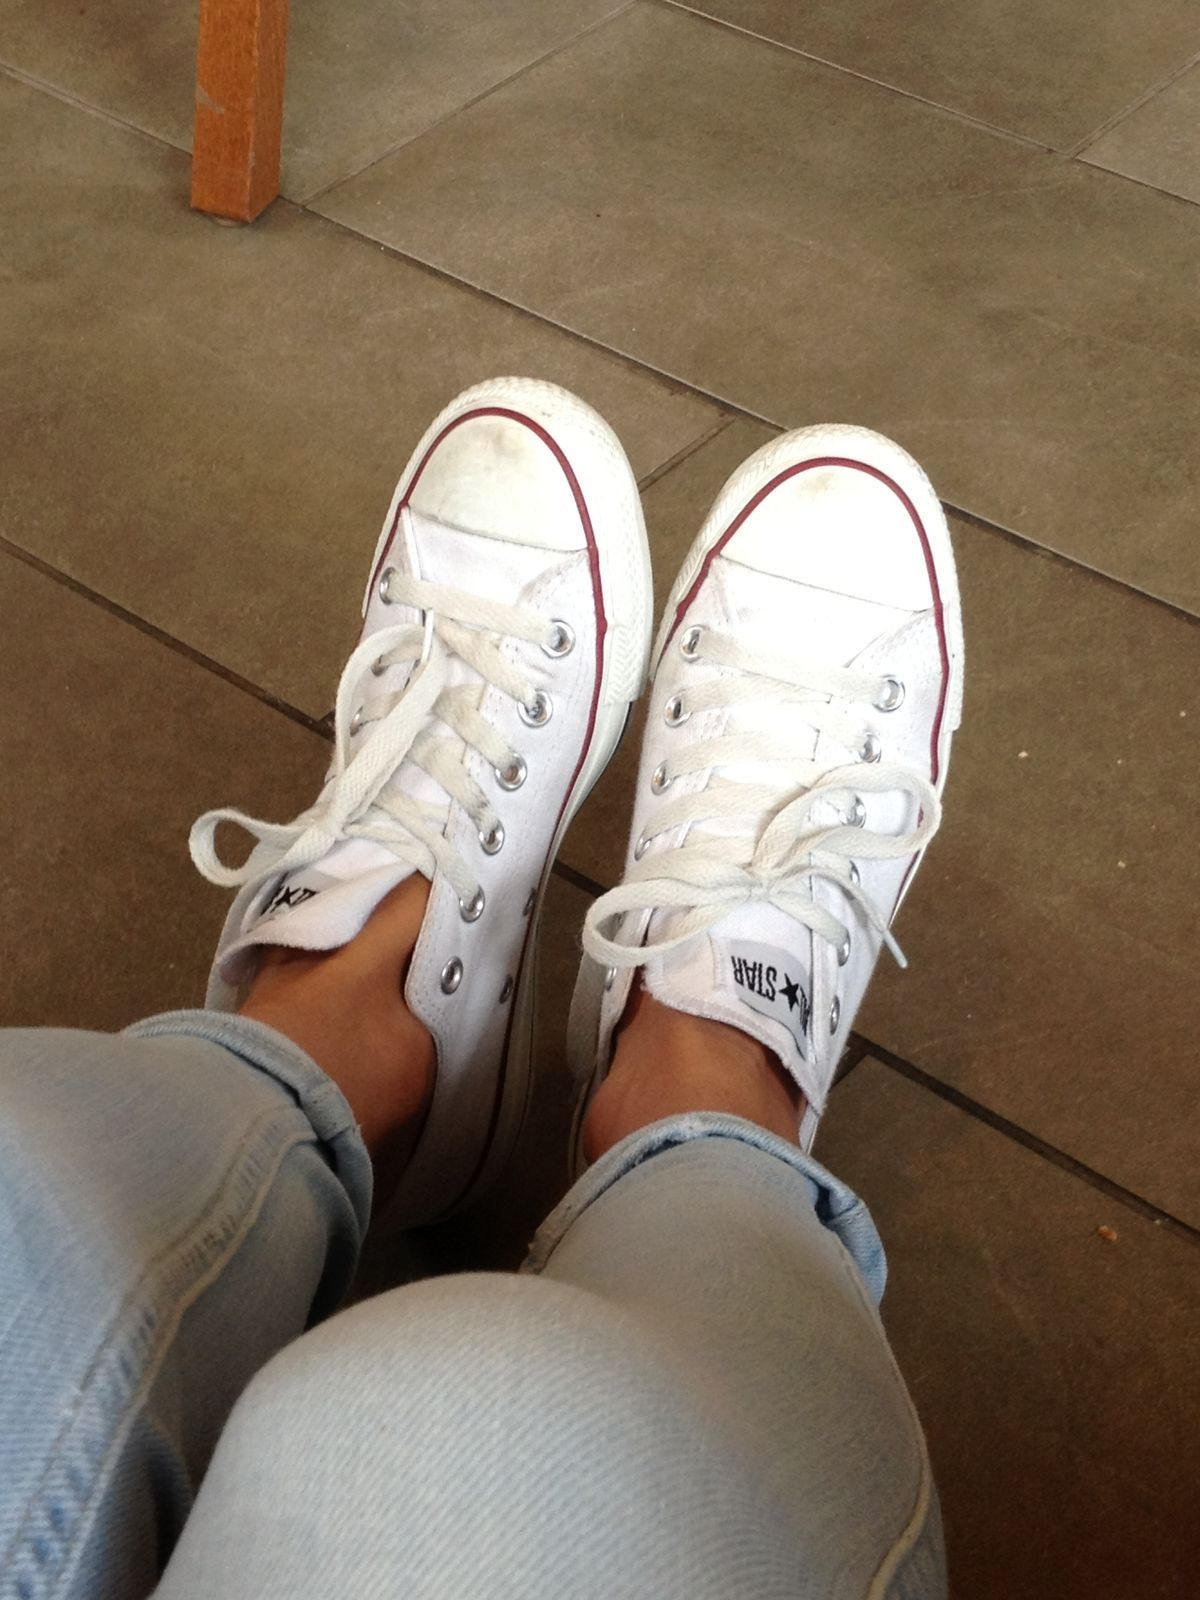 a8e3c0f7528 Witte All stars, converse, jeans, dames sneakers, | All Stars ...